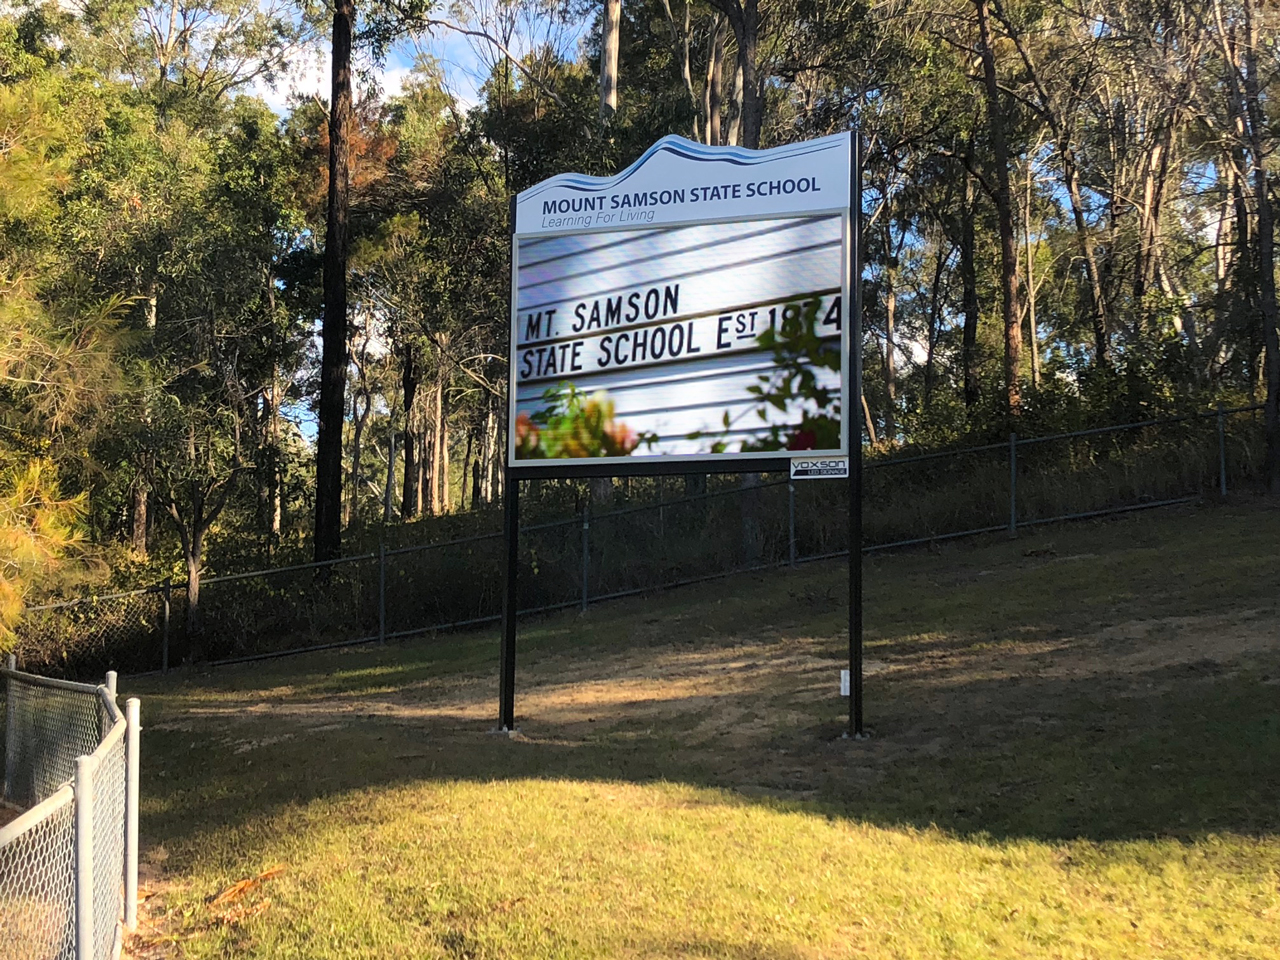 Mount Samson State School - Mount Samson - LED Pylon Sign